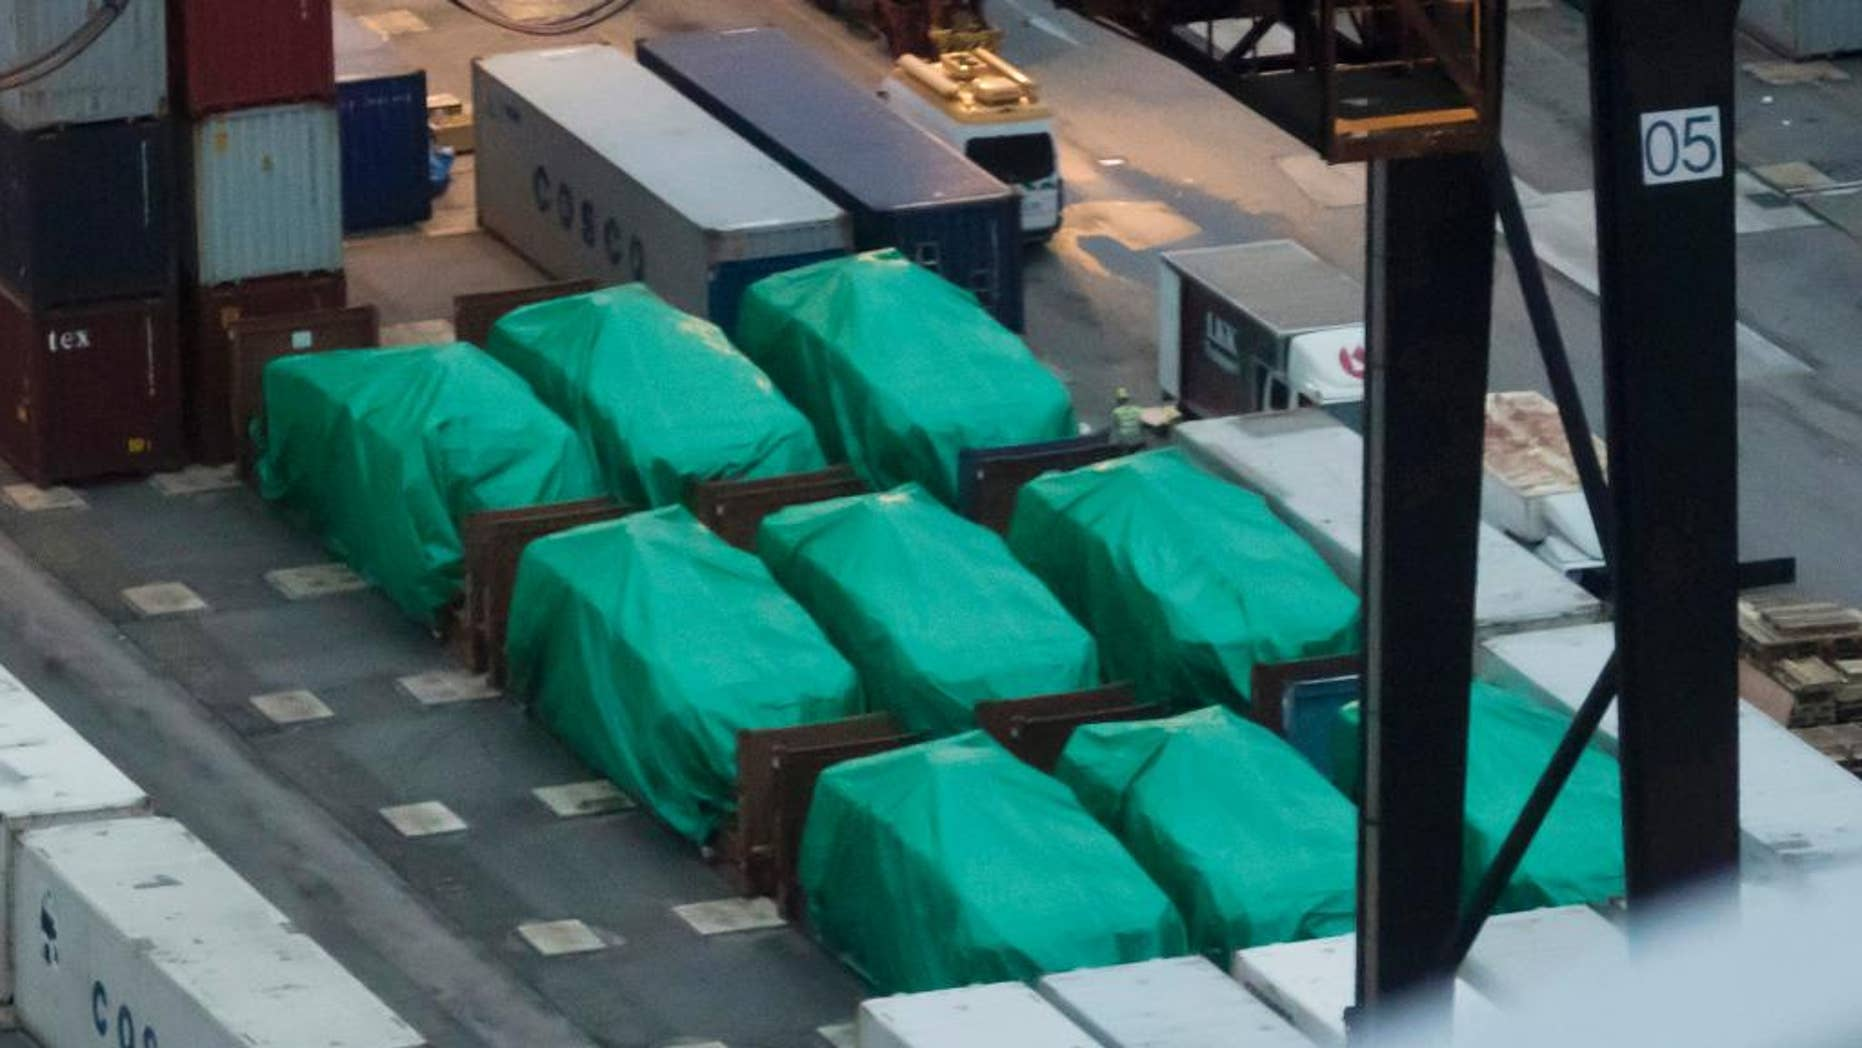 FILE - In this Thursday, Nov. 24, 2016, file photo, nine covered eight-wheeled Singapore-made Terrex infantry carrier vehicles are seized at a container terminal in Hong Kong. Authorities say nine armored personnel carriers belonging to Singapore that were seized in the Chinese territory of Hong Kong will be returned. (AP Photo/Kin Cheung, File)